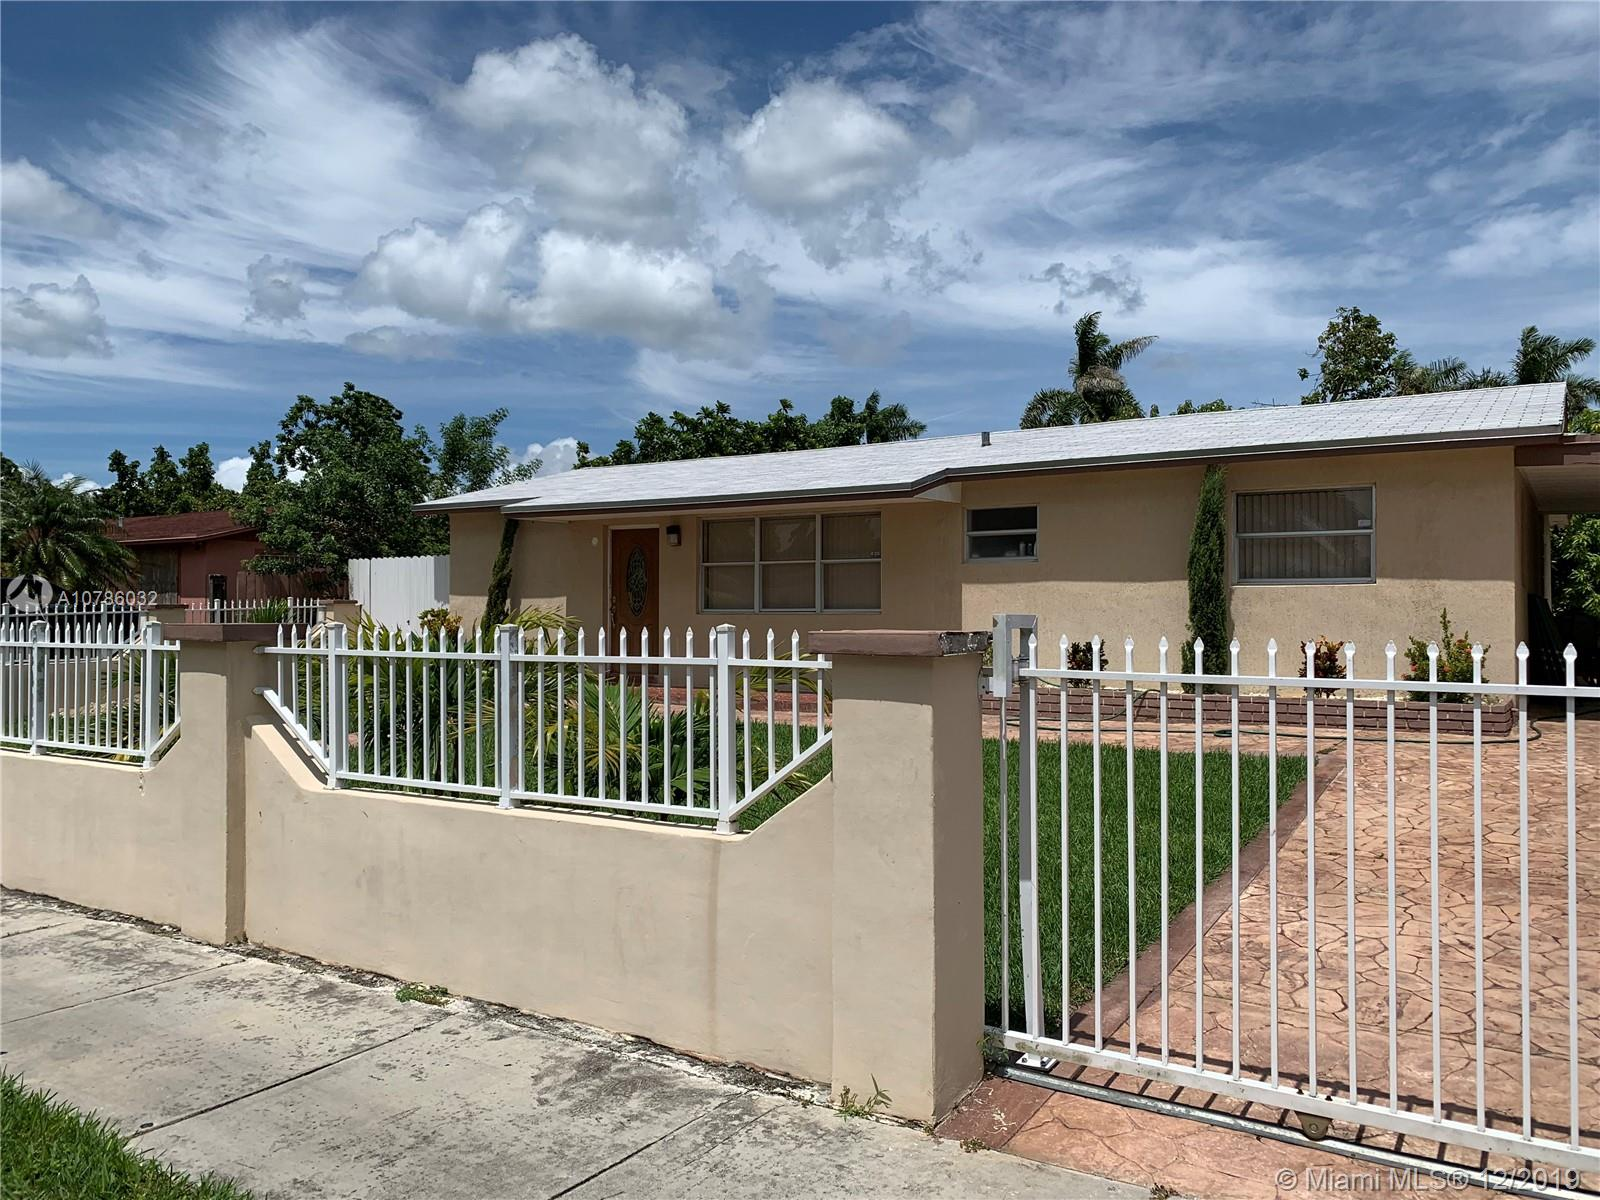 14391 SW 297th St, Homestead, Florida 33033, 3 Bedrooms Bedrooms, ,3 BathroomsBathrooms,Residential,For Sale,14391 SW 297th St,A10786032